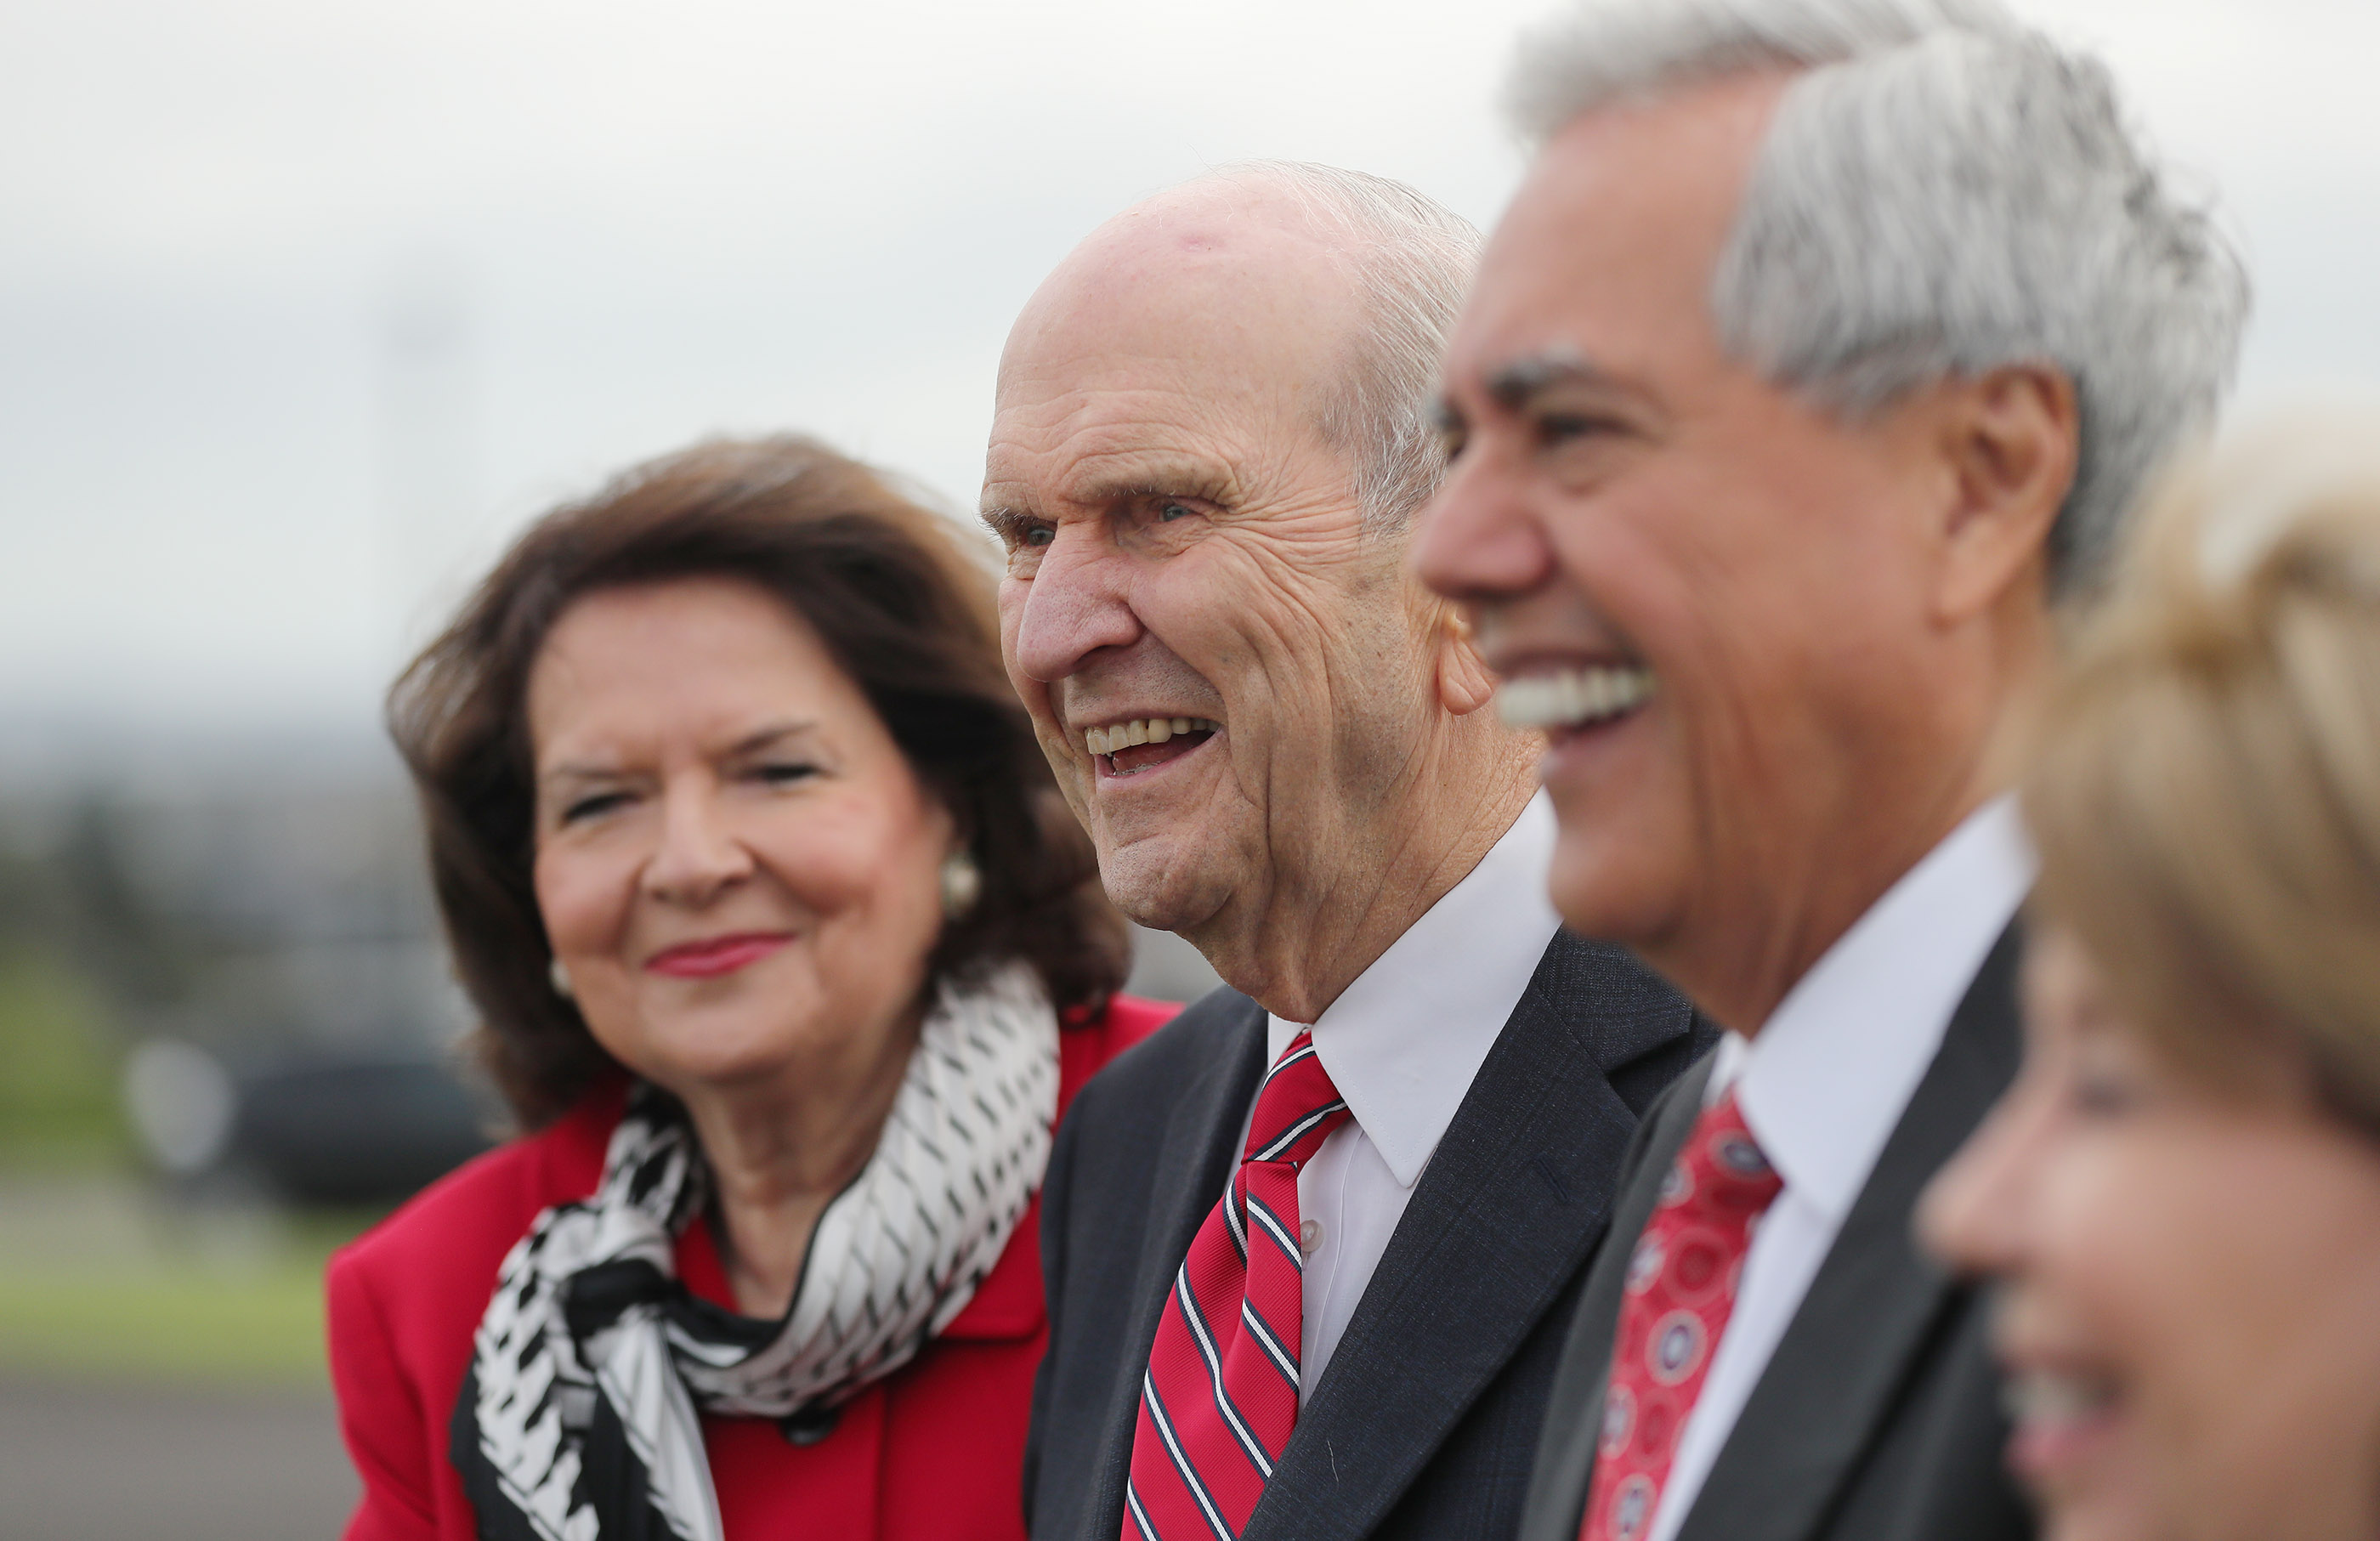 President Russell M. Nelson of The Church of Jesus Christ of Latter-day Saints shares a laugh on the grounds for the new temple in Auckland, New Zealand, on May 21, 2019.